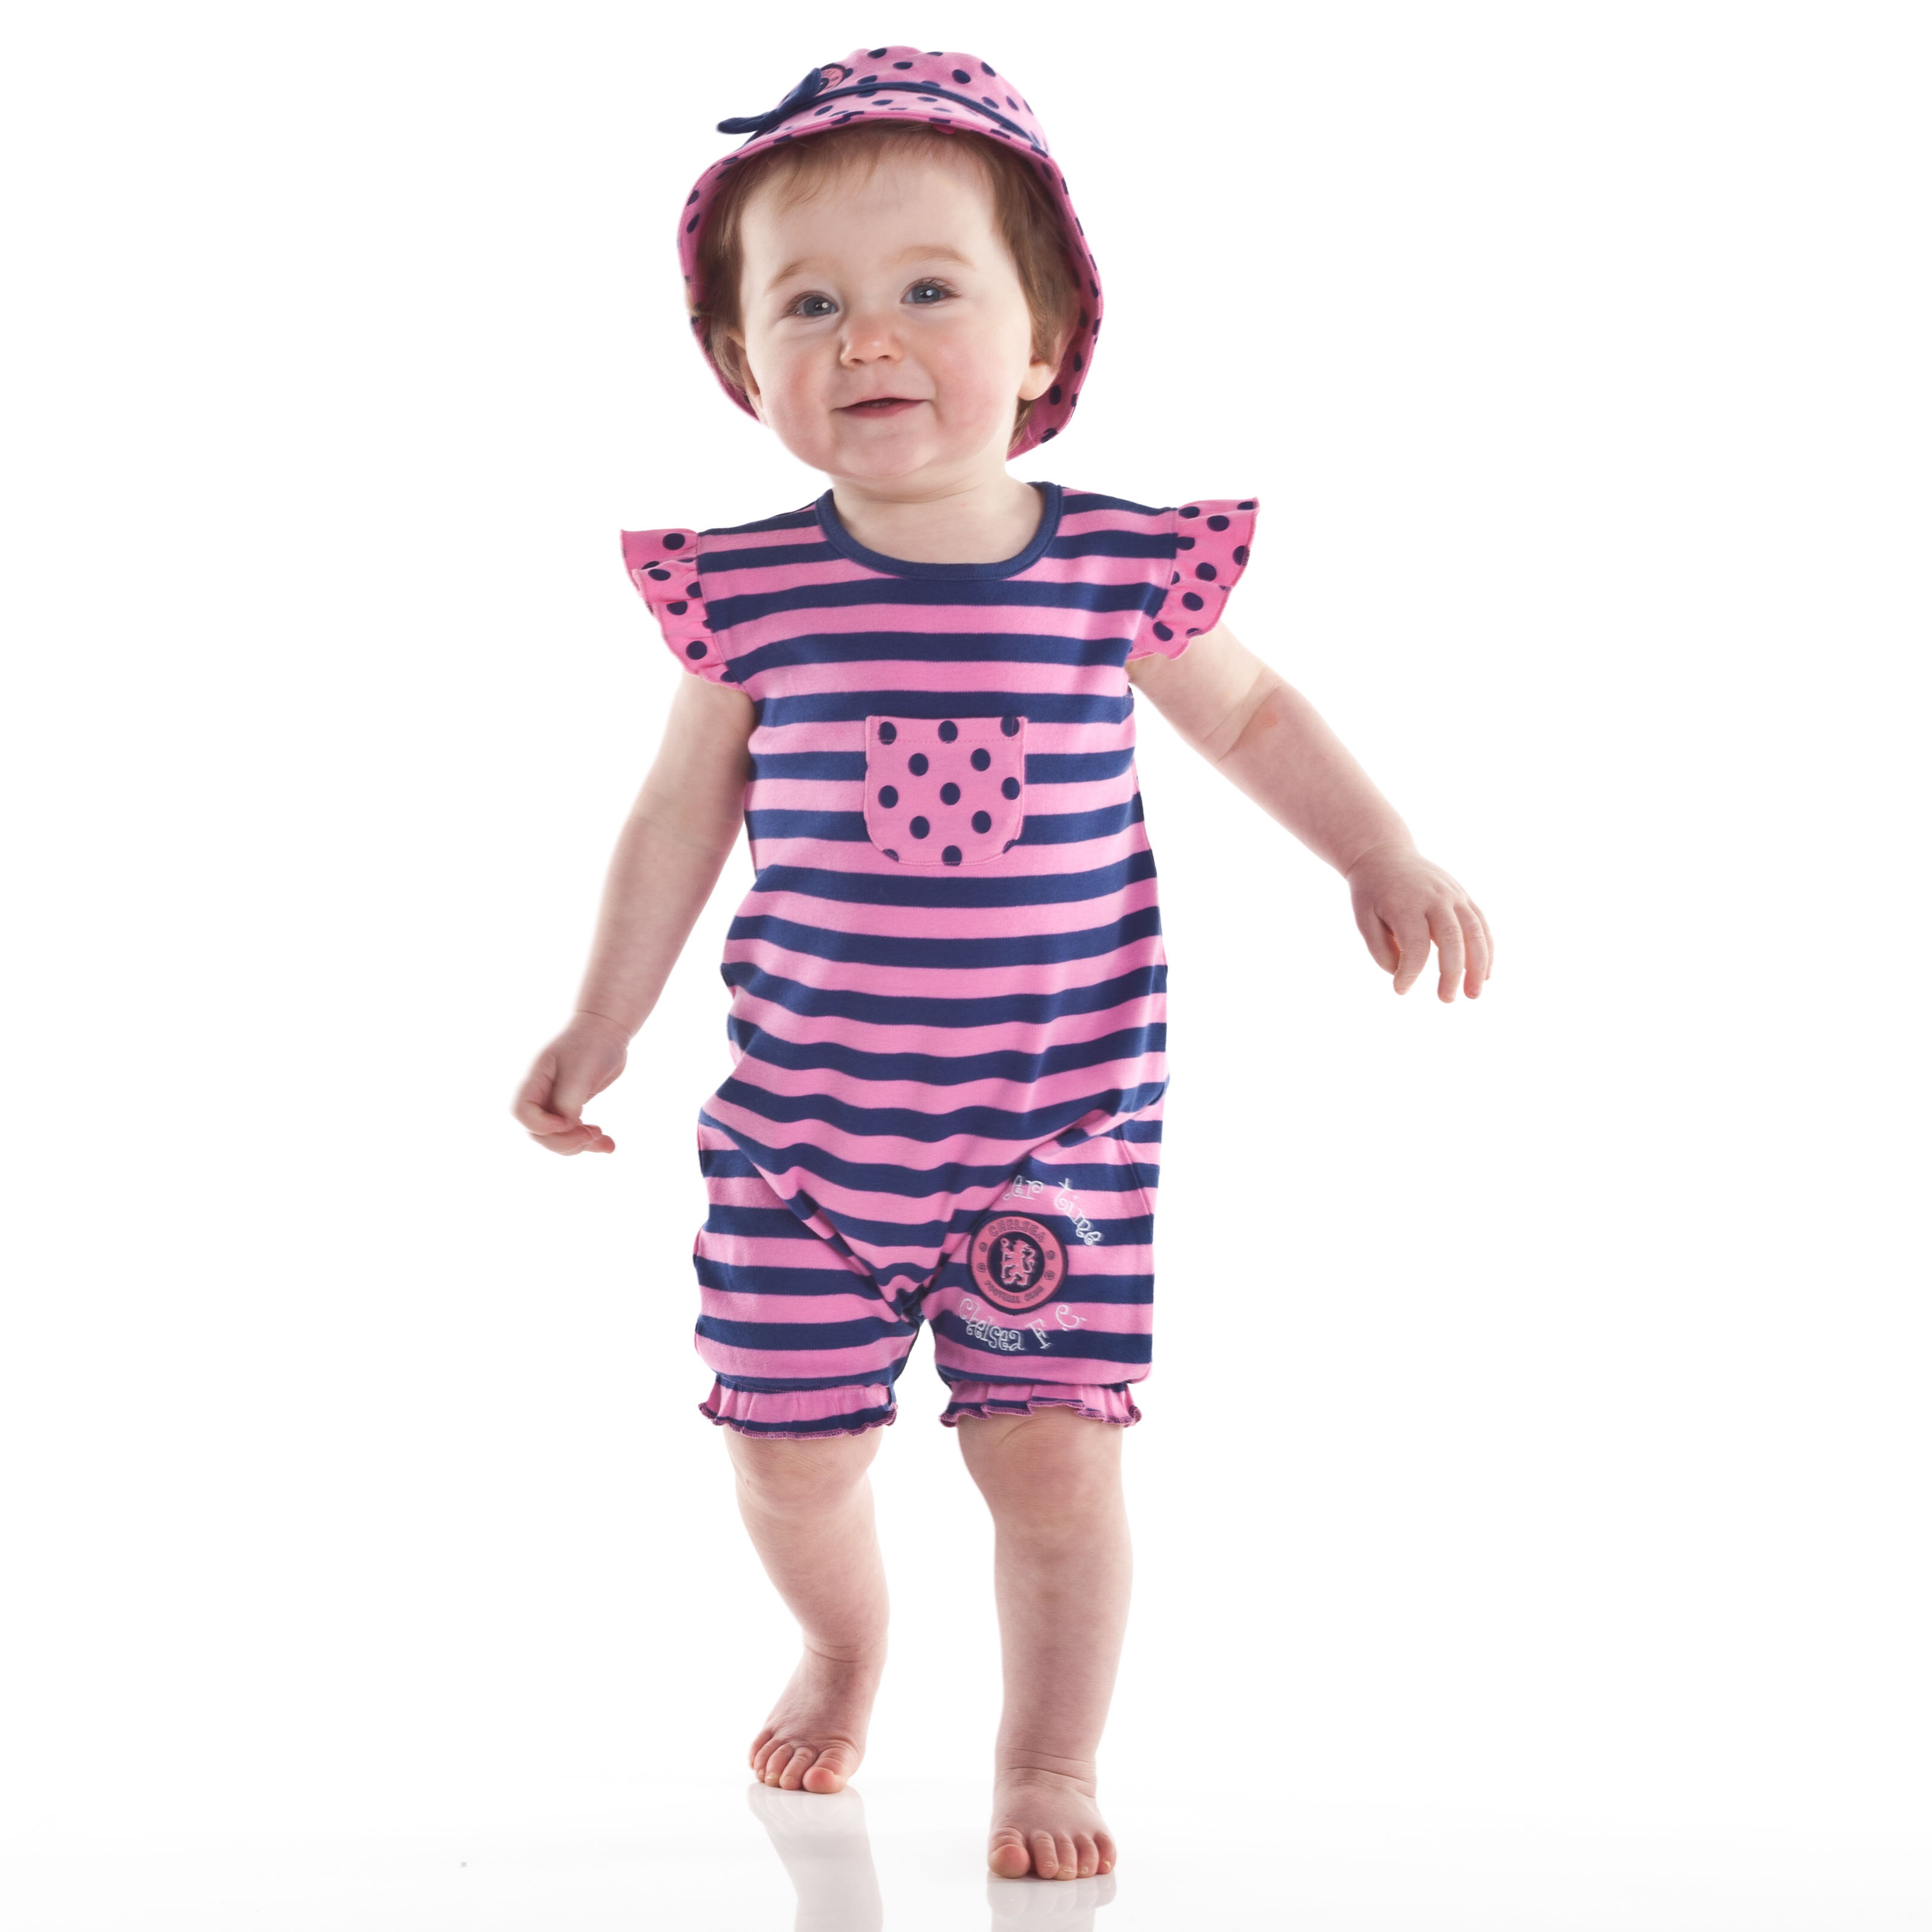 Chelsea Striped Romper and Hat Set - Sugar Pink/Navy - Baby Girls